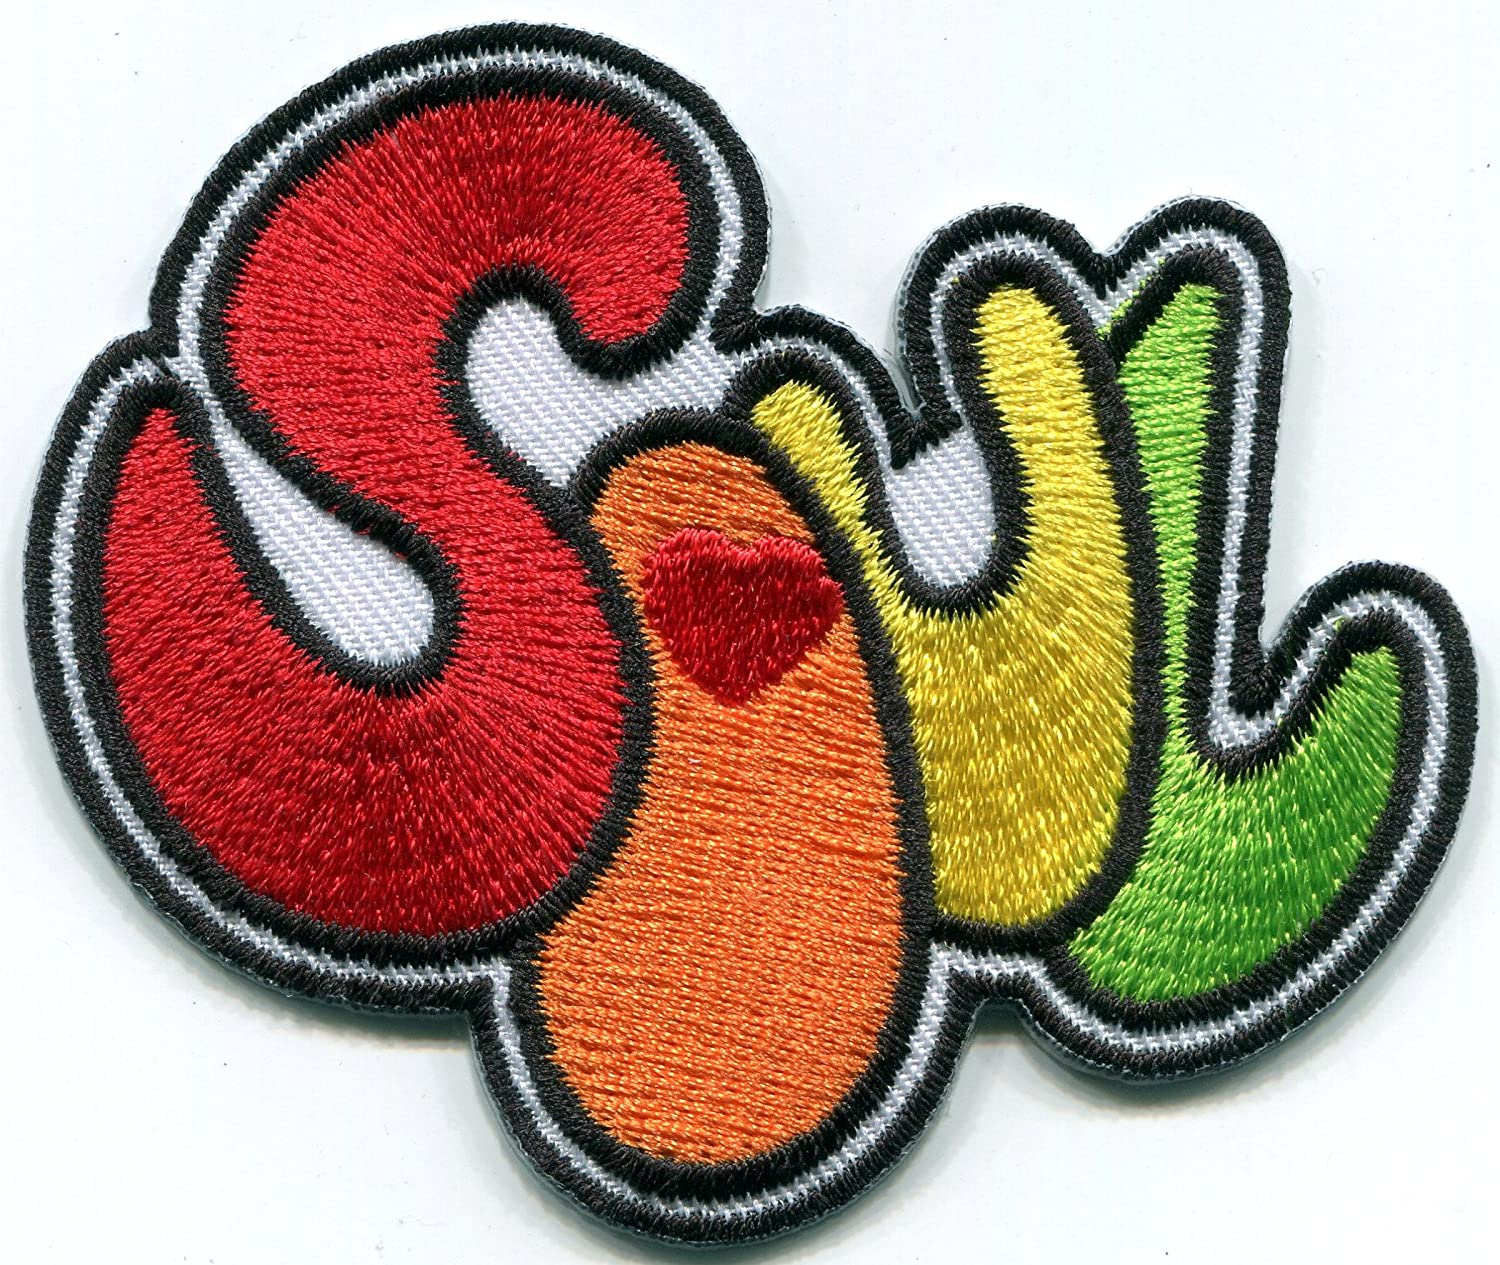 record music patch sew on embroidered applique fabric patches  for clothes DP